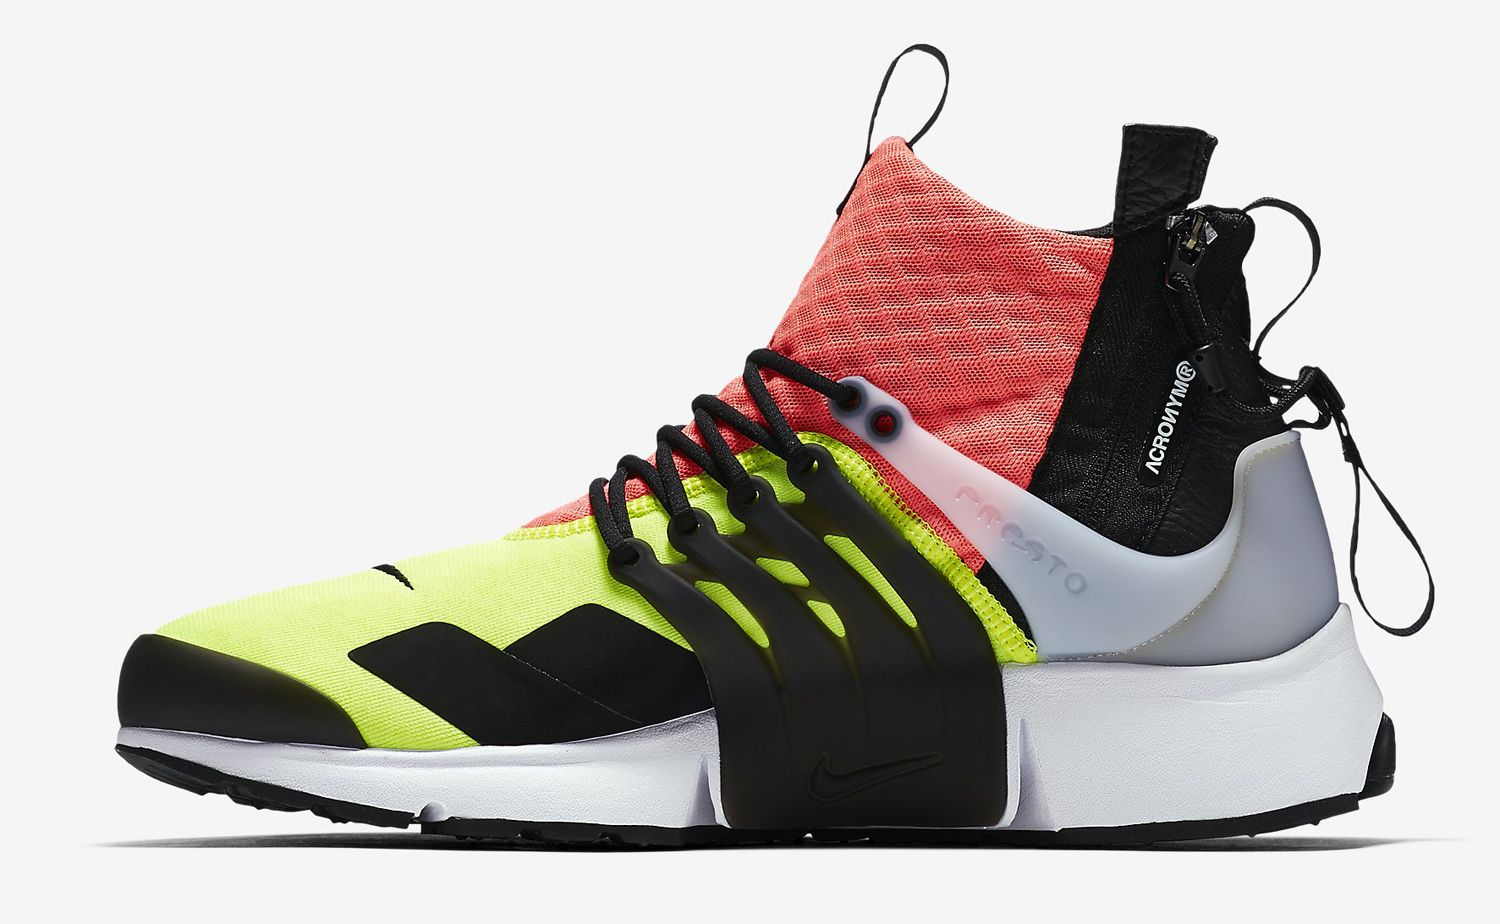 Release Date and Where to buy Acronym x NikeLab Air Presto Mid